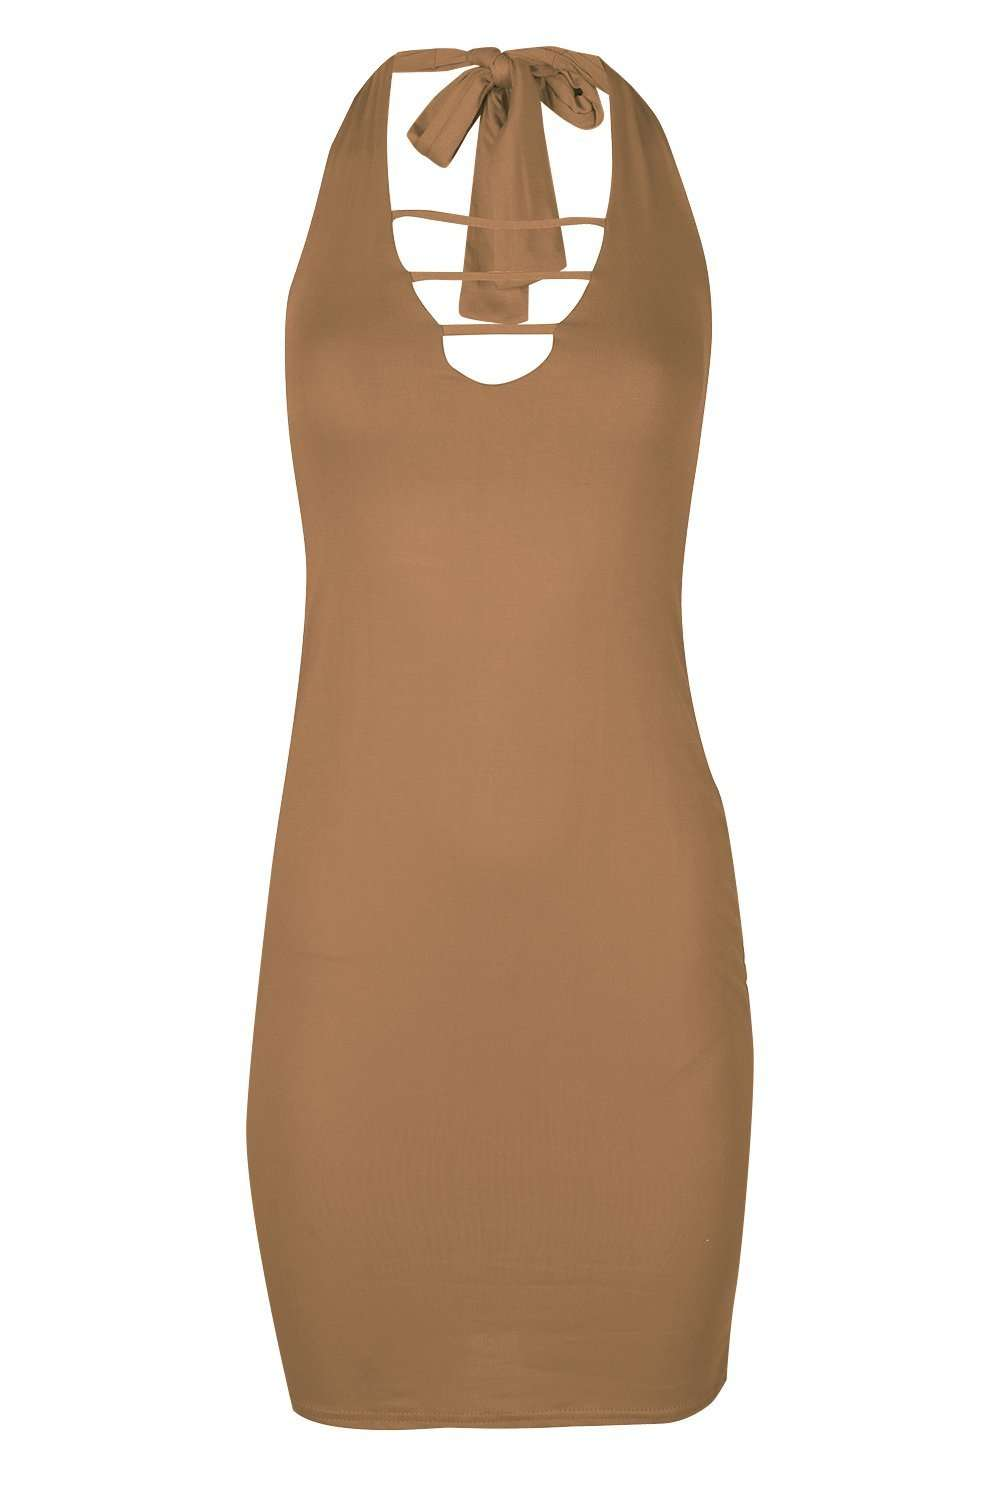 Zara Plunge Halterneck Bodycon Midi Dress - bejealous-com